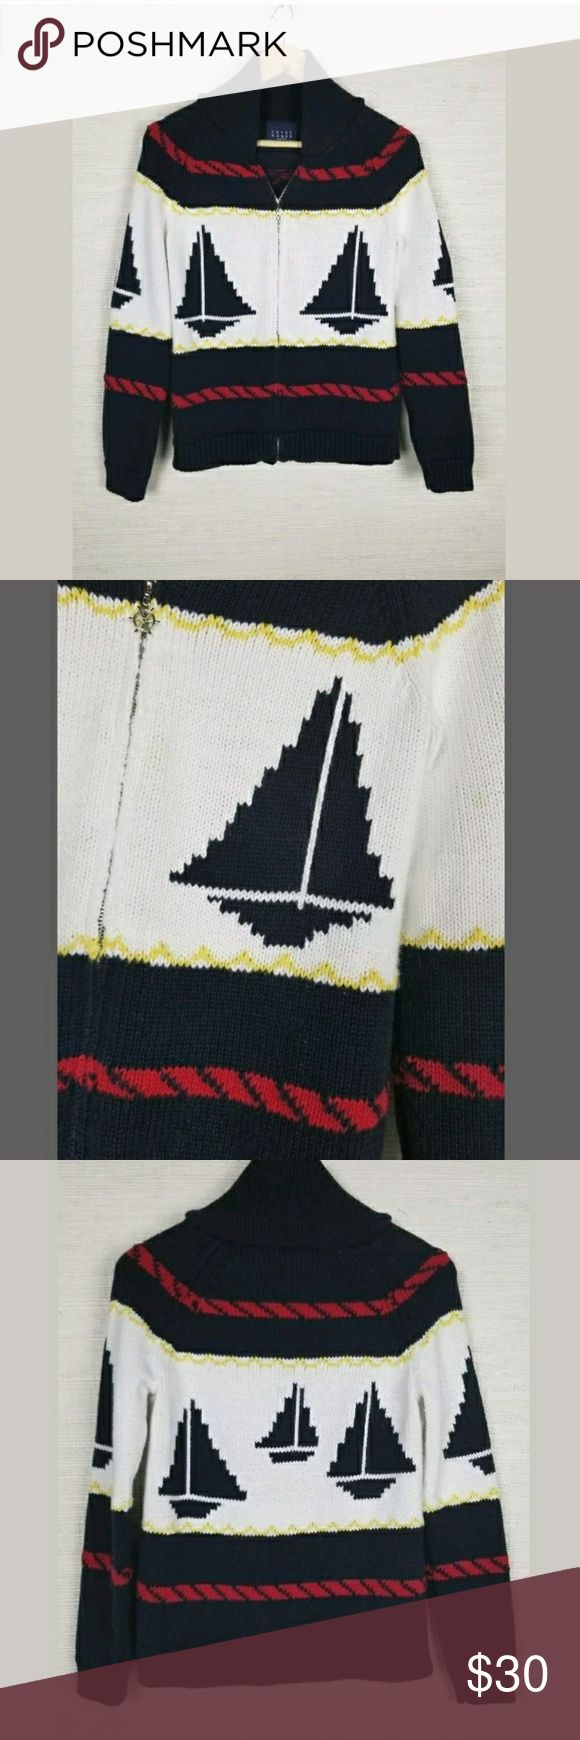 Crazy Horse Liz Claiborne Nautical Zip Up sweater Women's Crazy Horse Liz Claiborne Nautical Zip Up Boat Sweater Euc Size M  Light Stain on left chest area(see photos) crazy horse Liz claiborne Sweaters